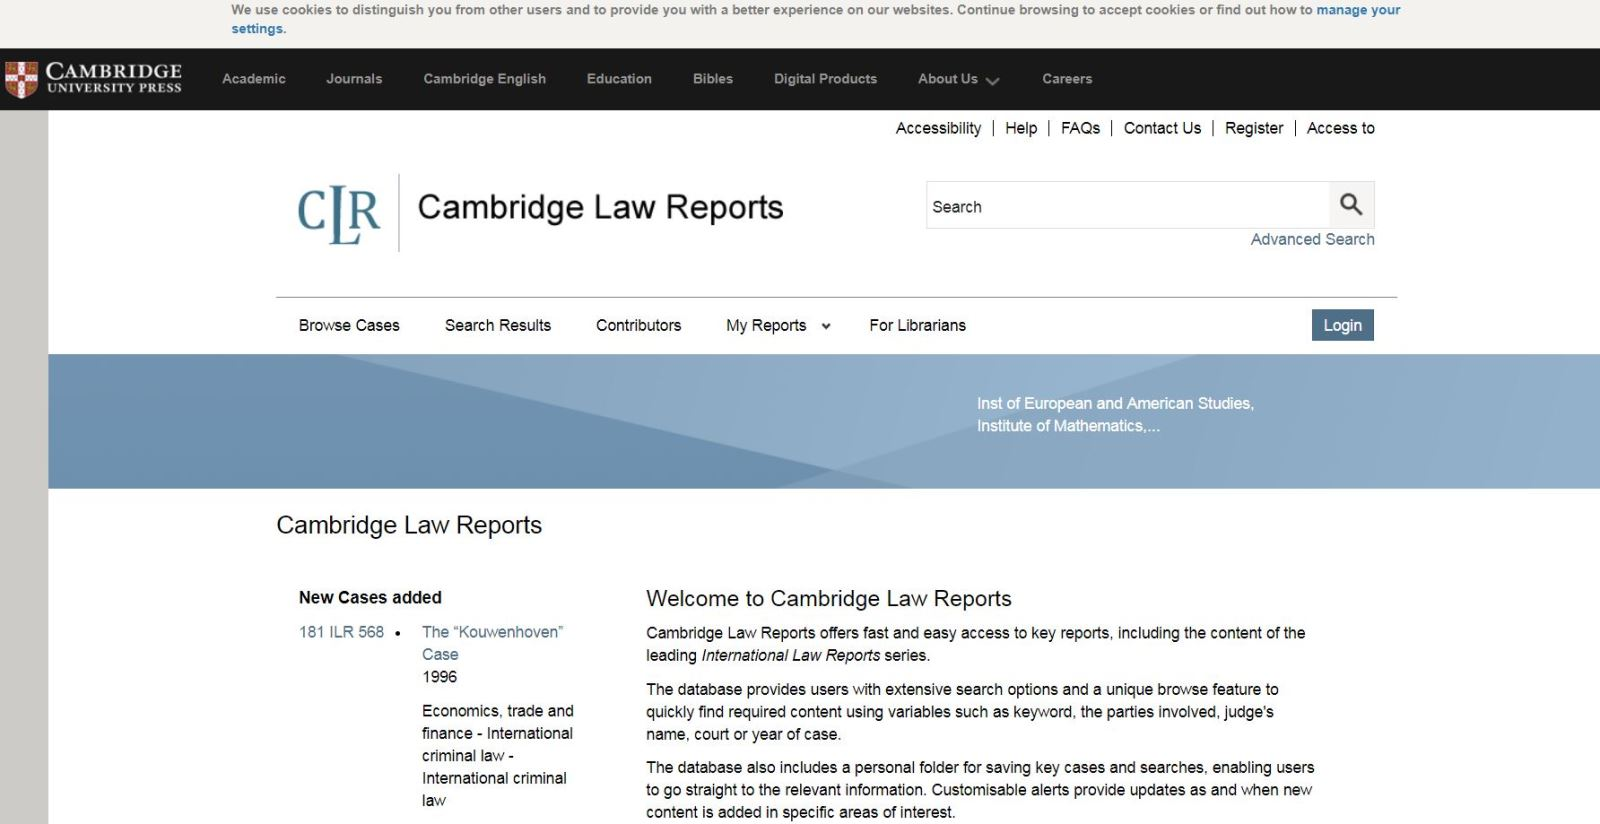 Cambridge Law Reports